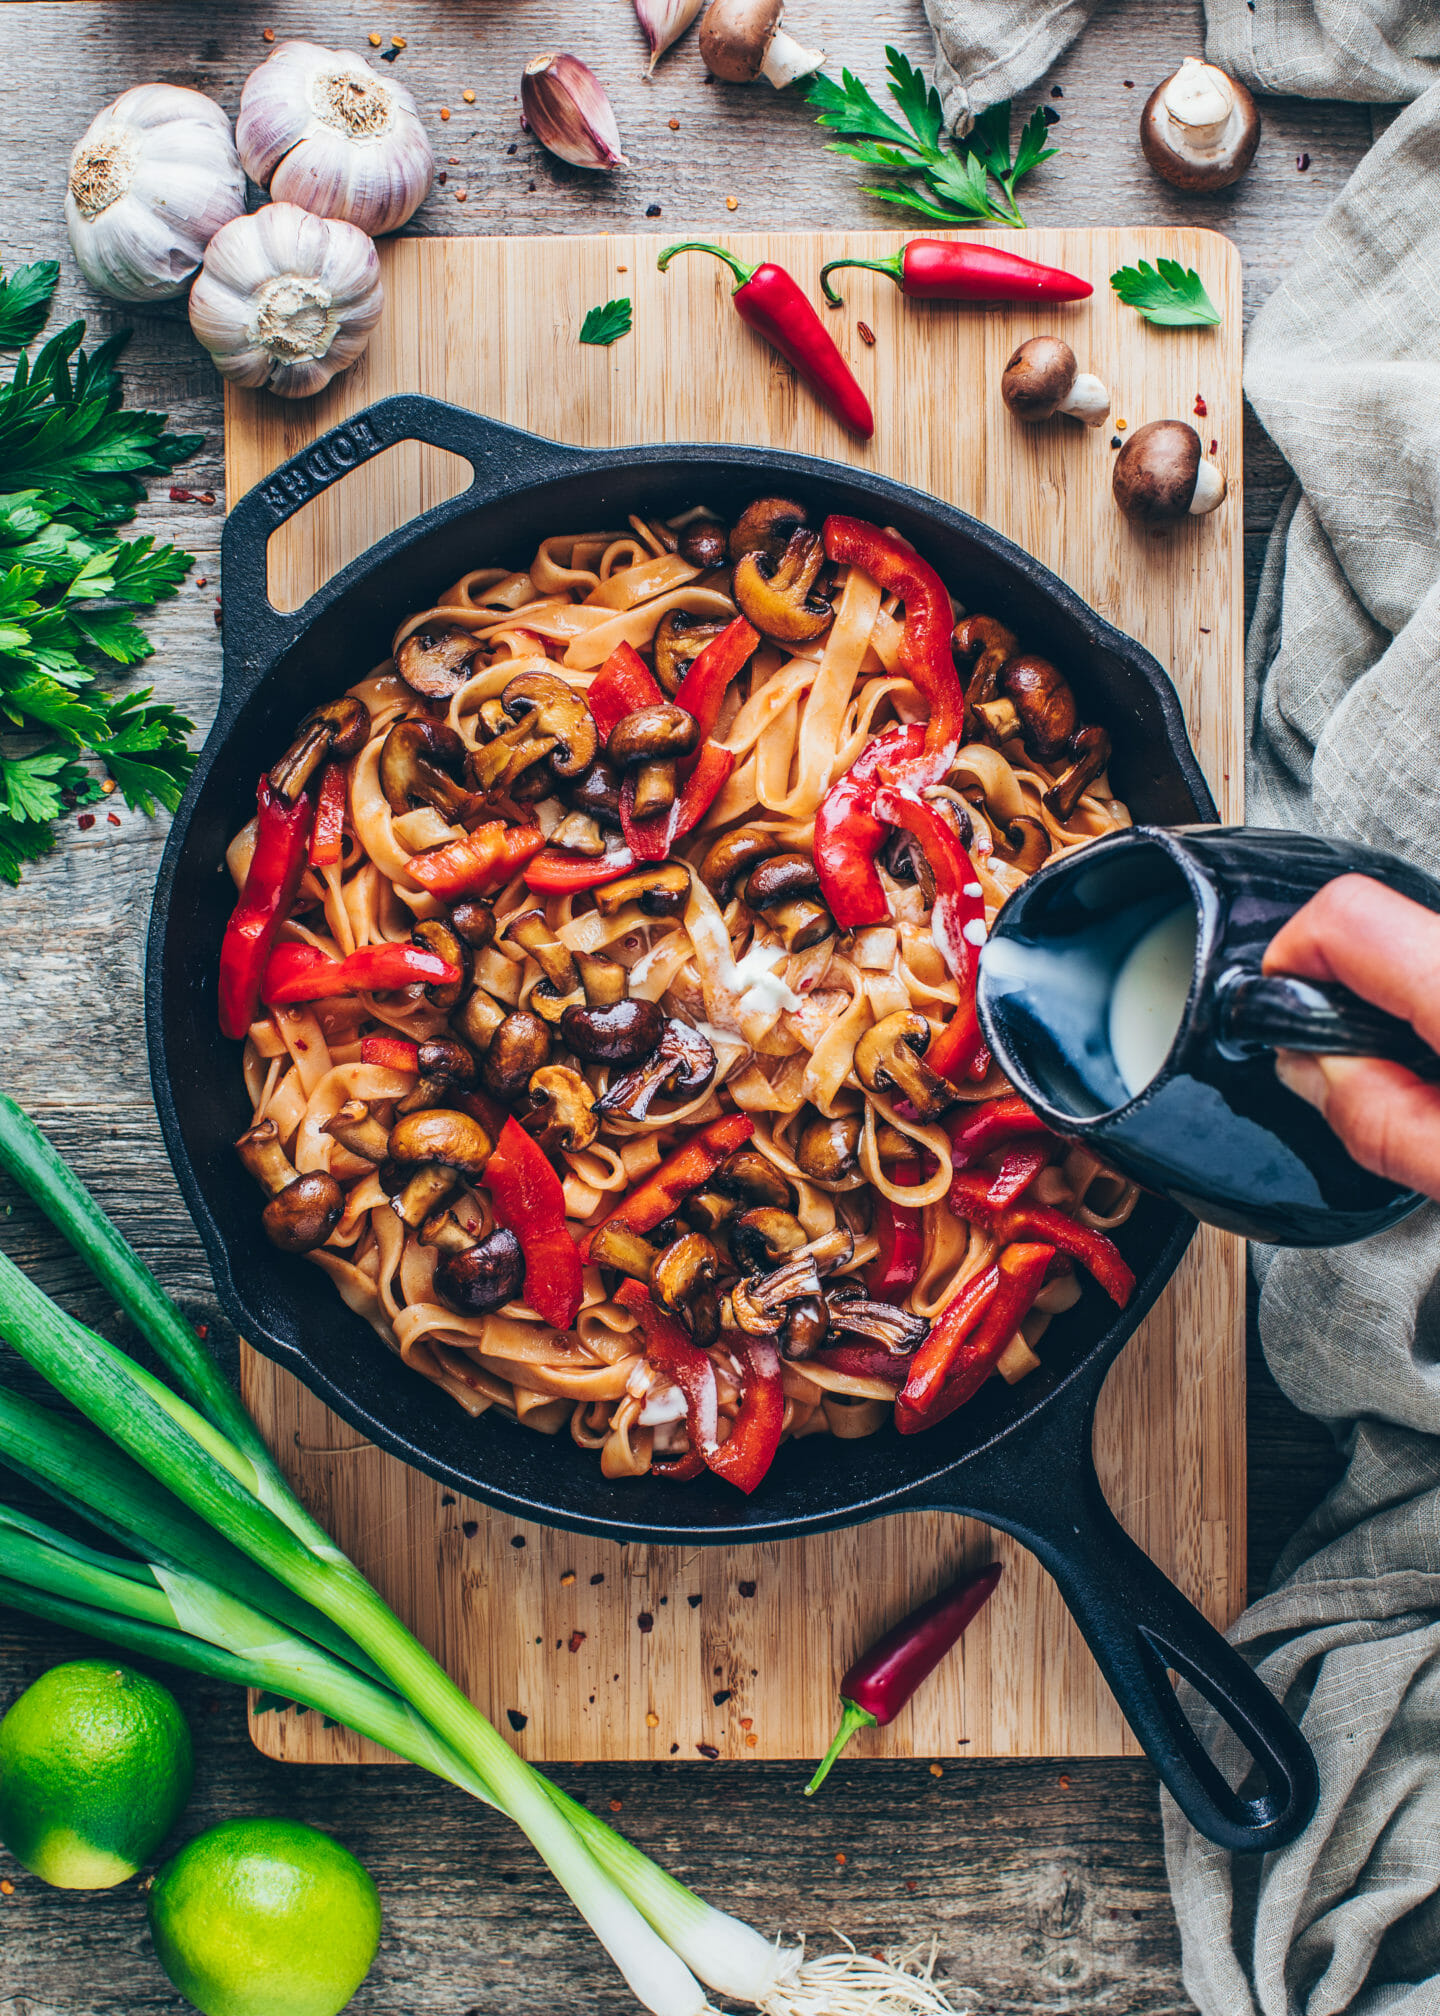 Asian Noodles with Chili, Garlic, Coconut milk, mushrooms, and bell pepper